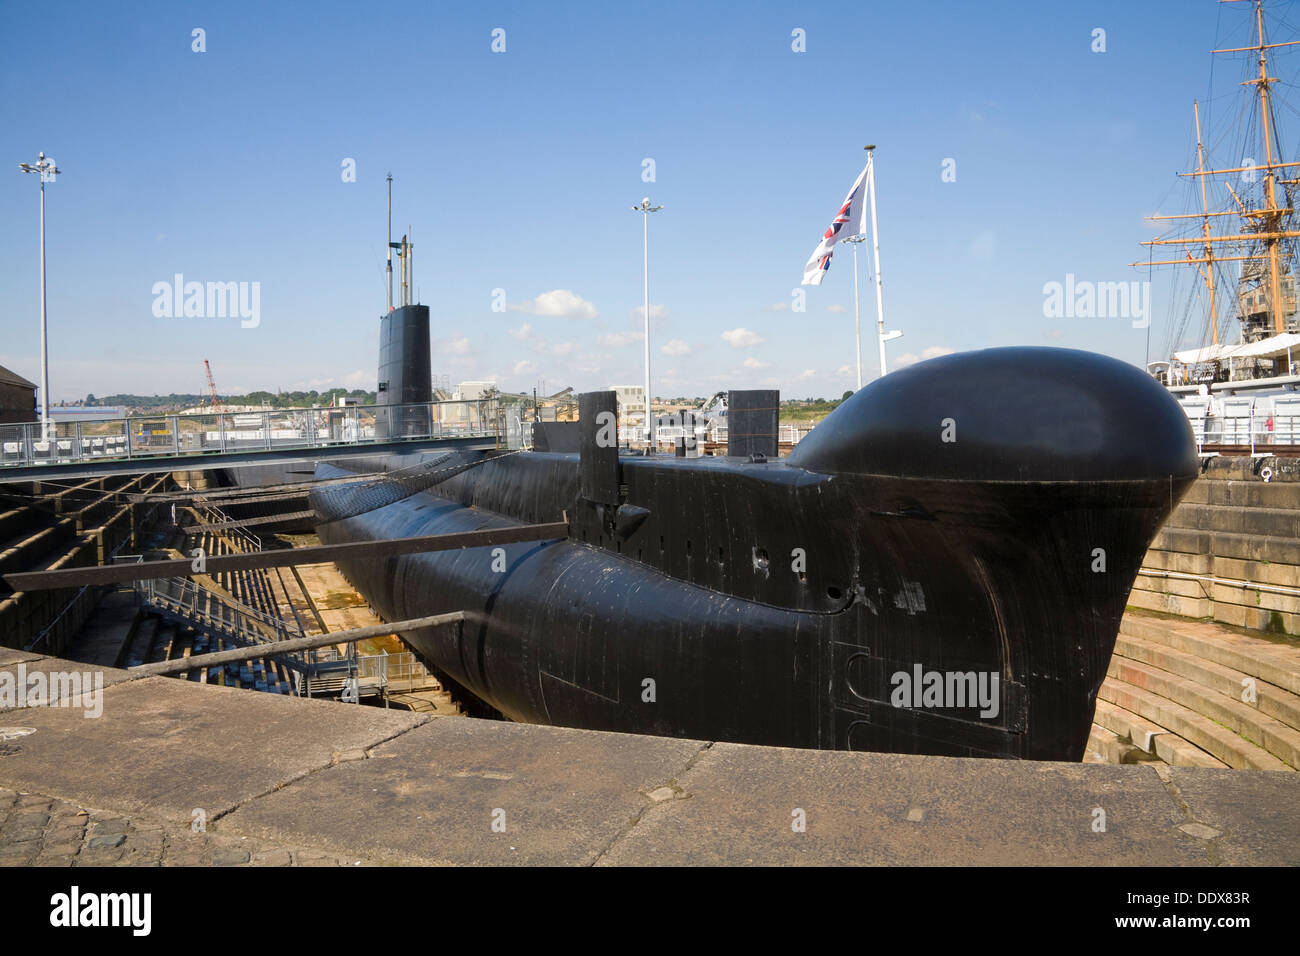 Historic Dockyard Chatham Kent HMS Ocelot (S17) an Oberon-class diesel-electric submarine laid down by HM Dockyard Chatham 1960 - Stock Image